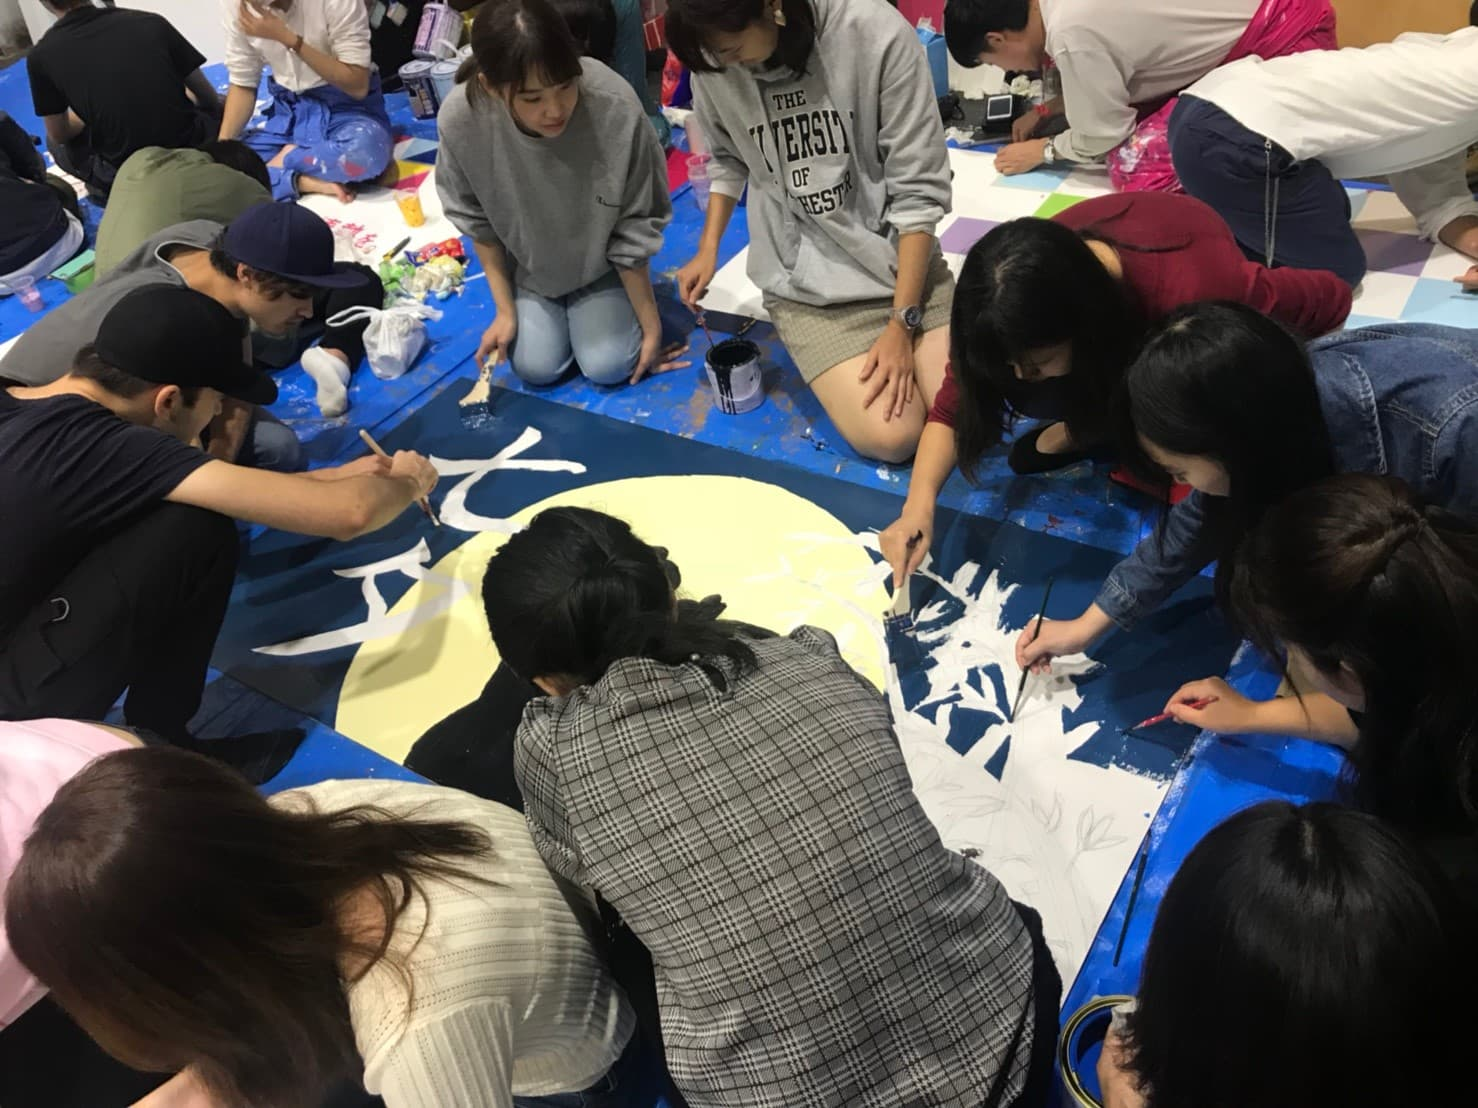 Students are preparing for Waseda sai